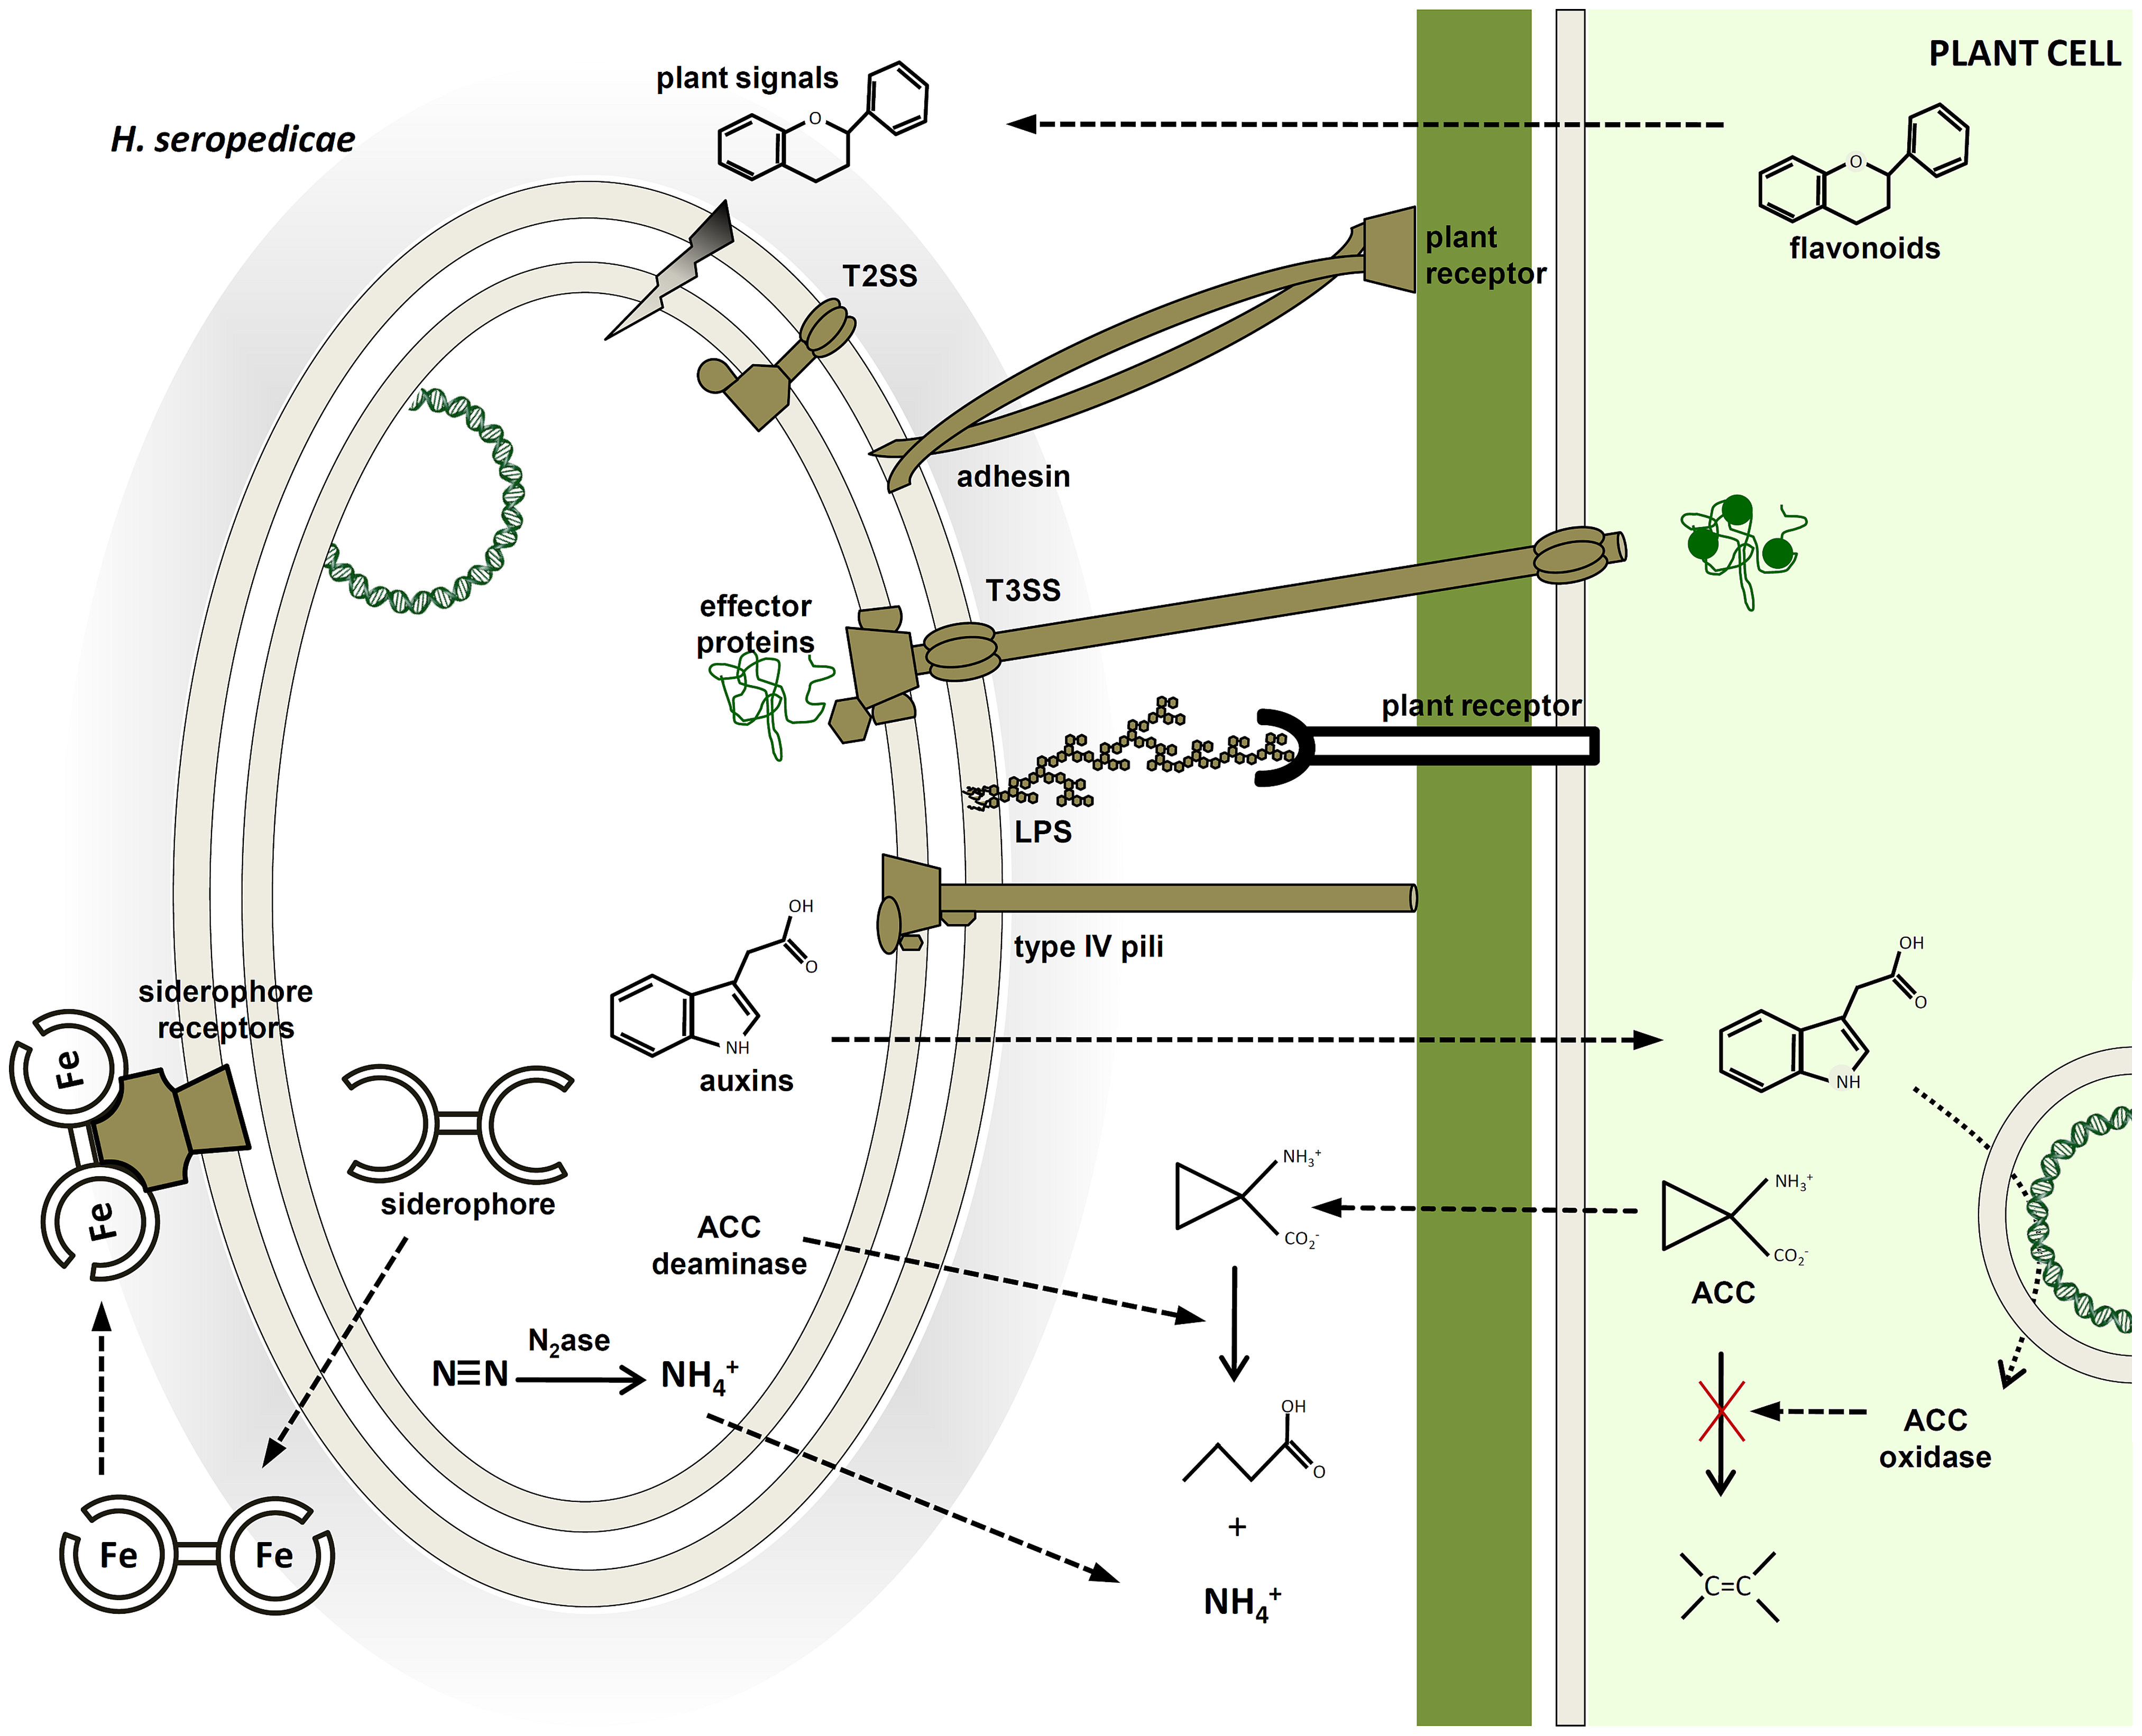 Molecular mechanisms probably involved in plant colonization and plant growth promotion identified in the <i>H. seropedicae</i> SmR1 genome.